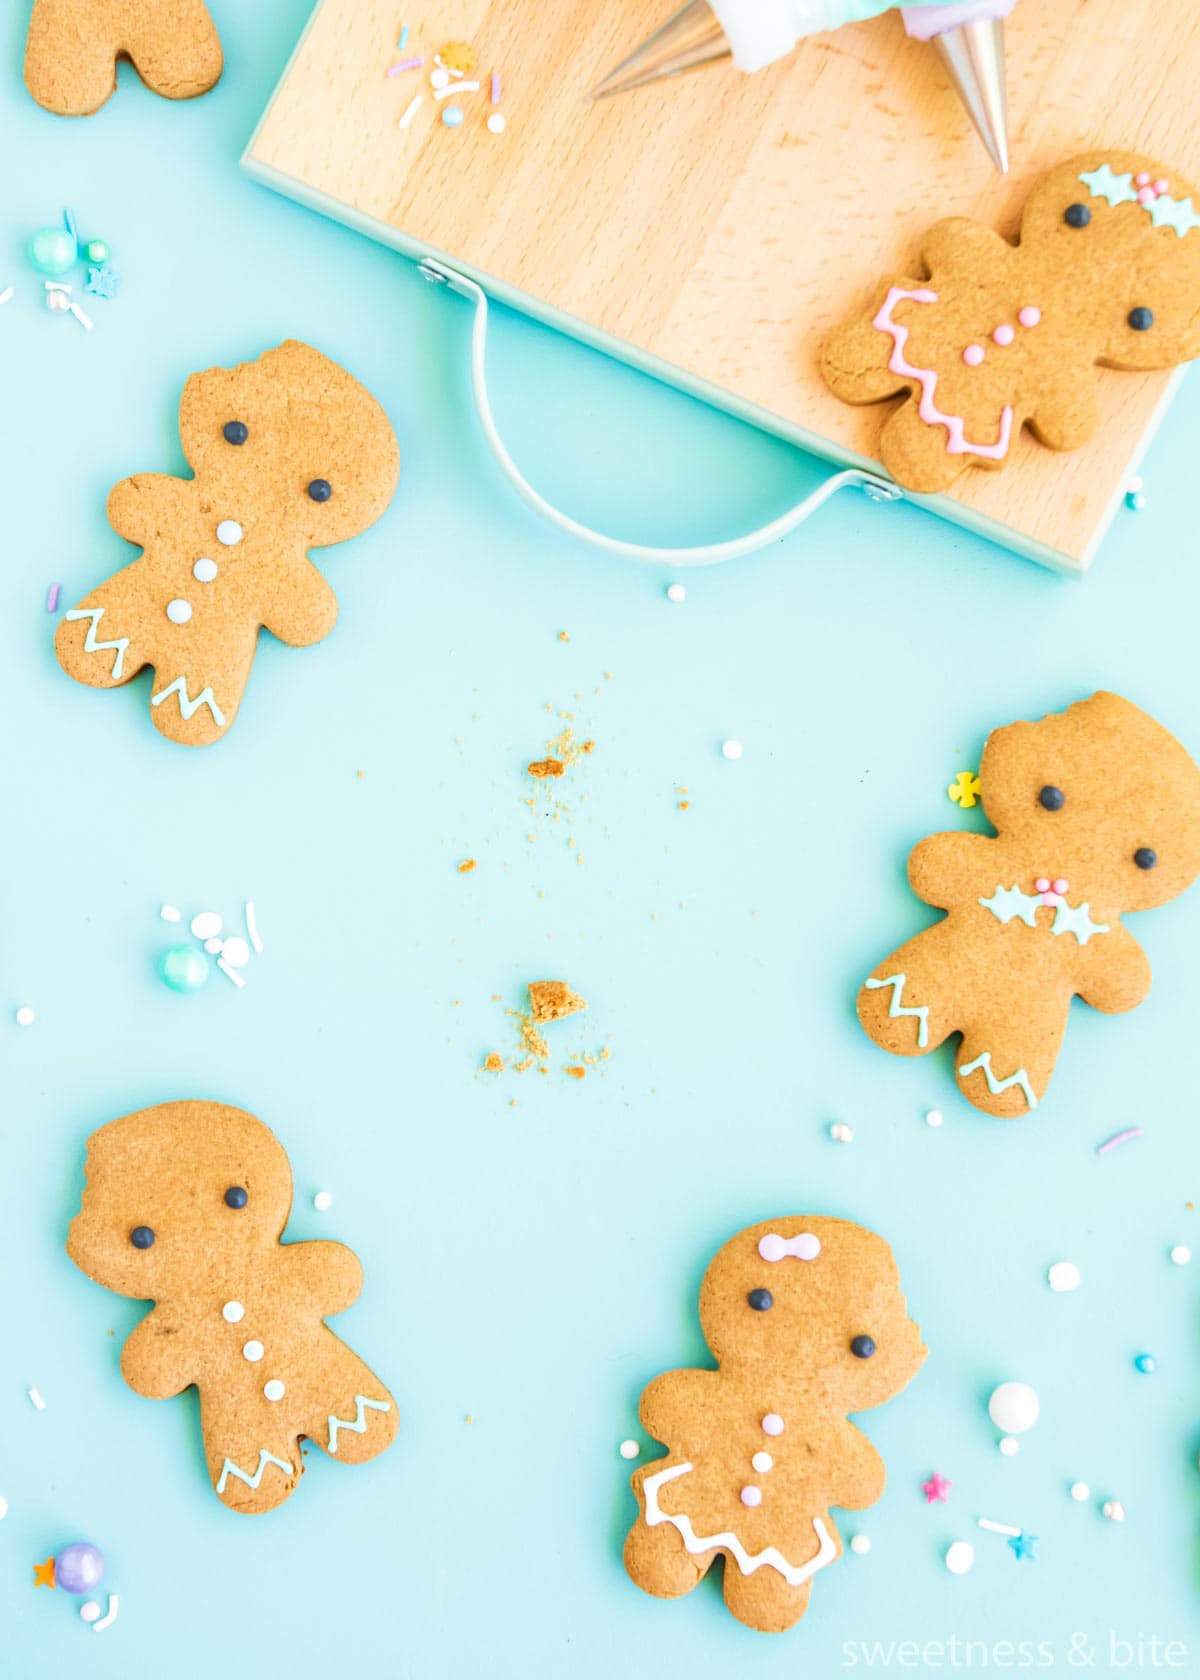 Gluten free gingerbread cookies with one missing and crumbs in its place.